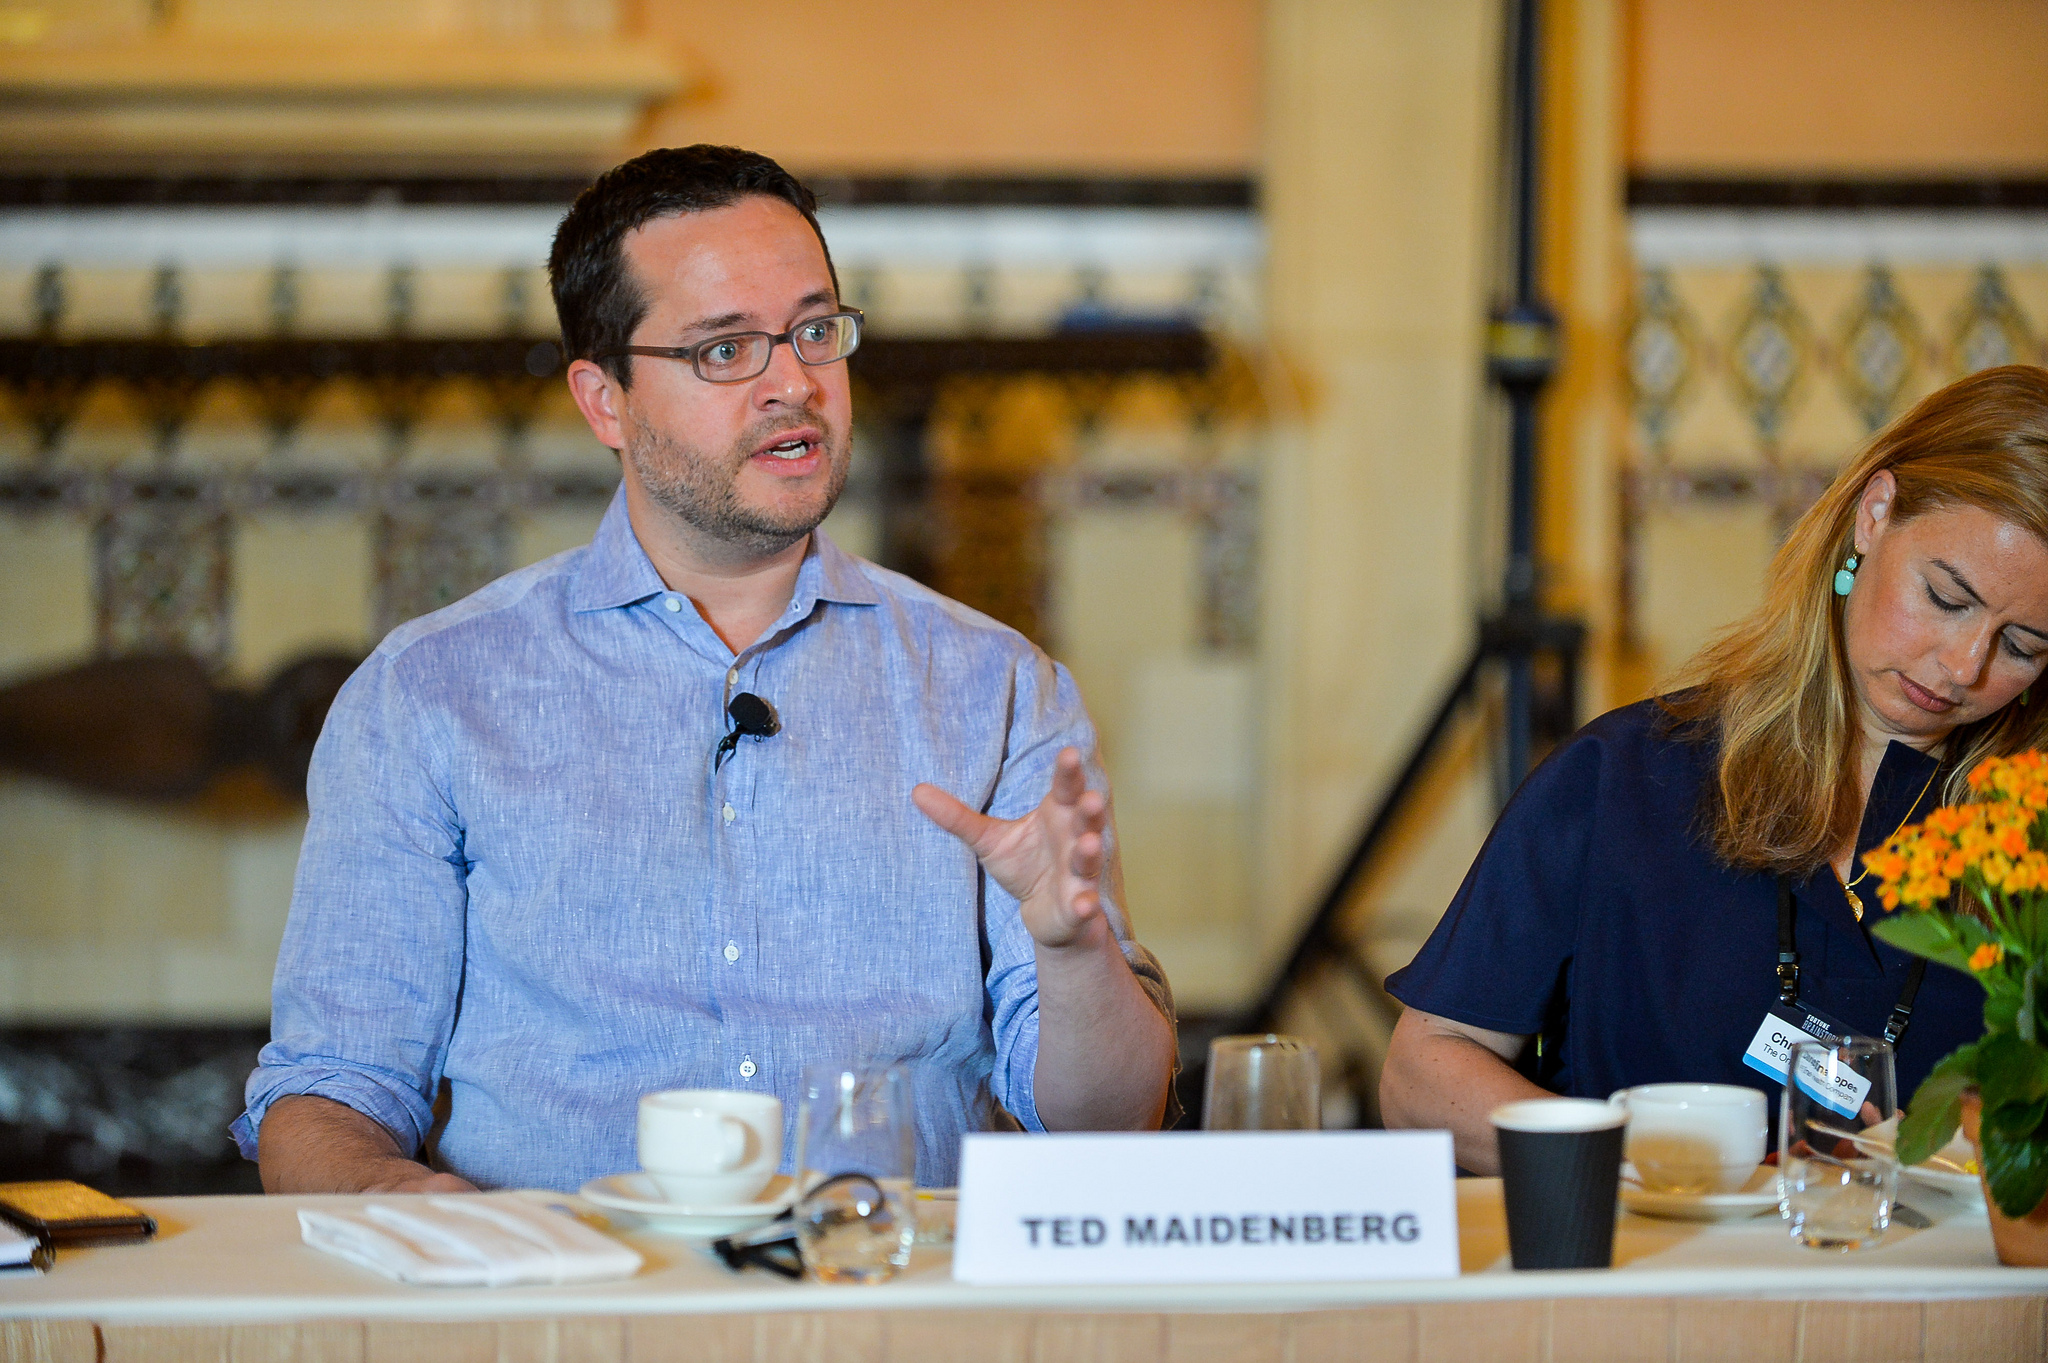 Ted Maidenberg, co-founder and partner at Social Capital, speaks at the Fortune Brainstorm Health conference in San Diego on May 3, 2017.